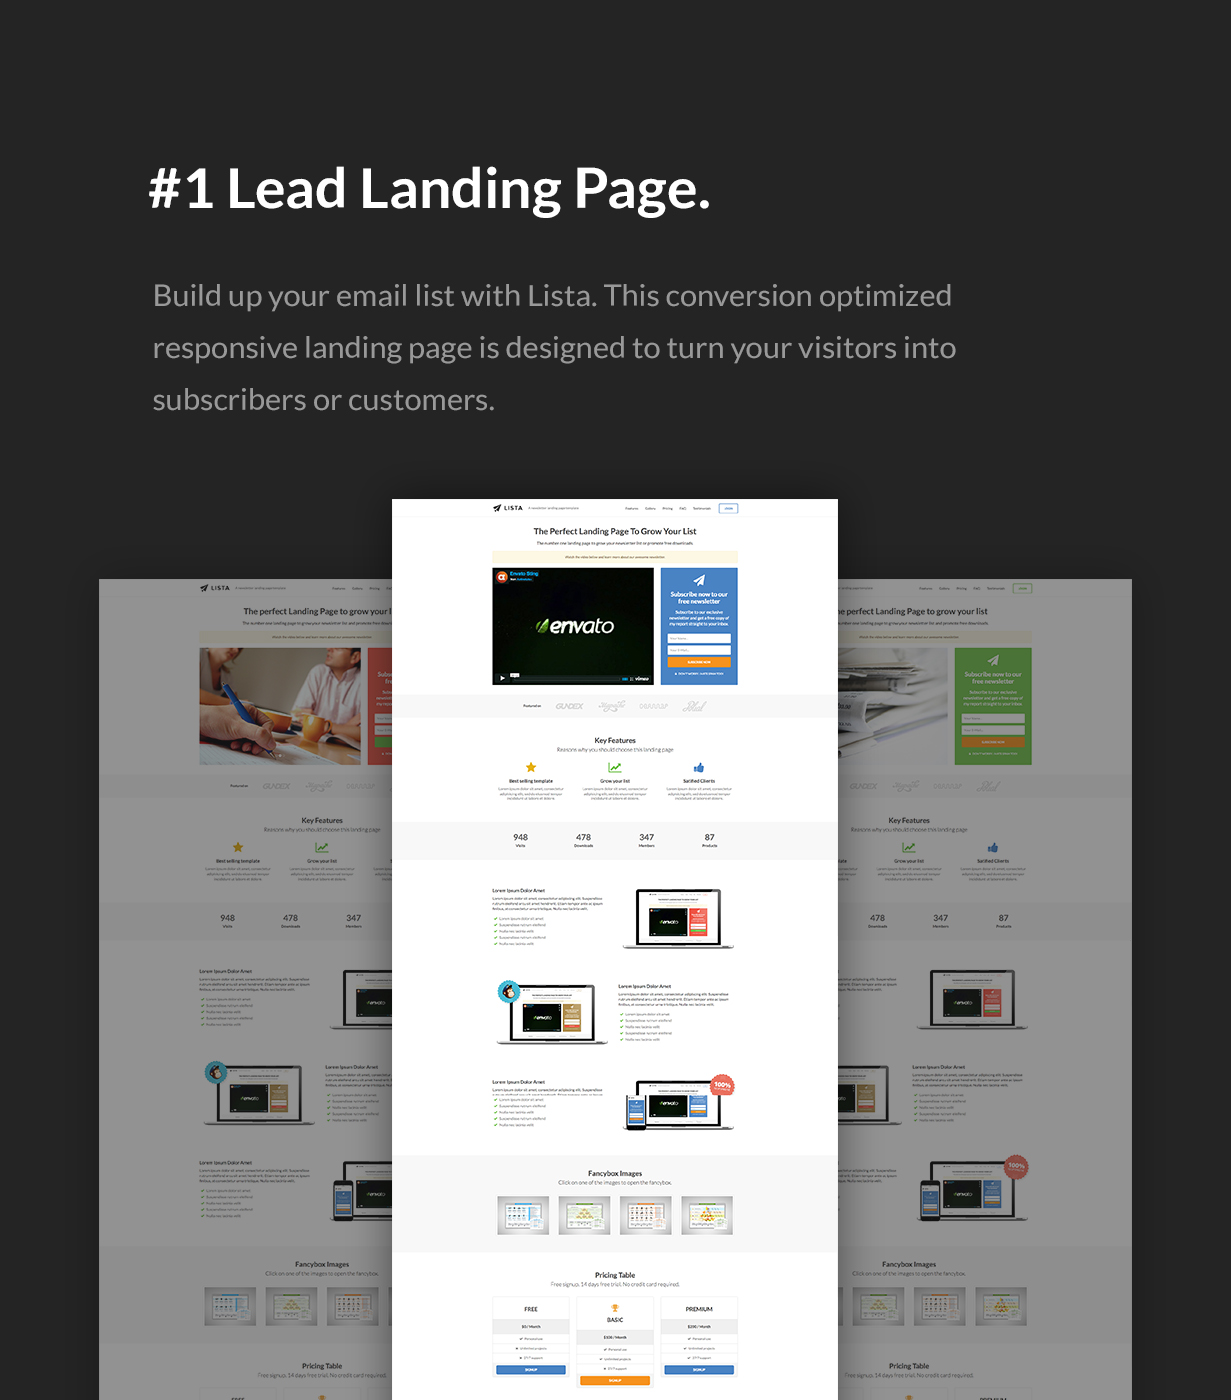 Lead Landing Page